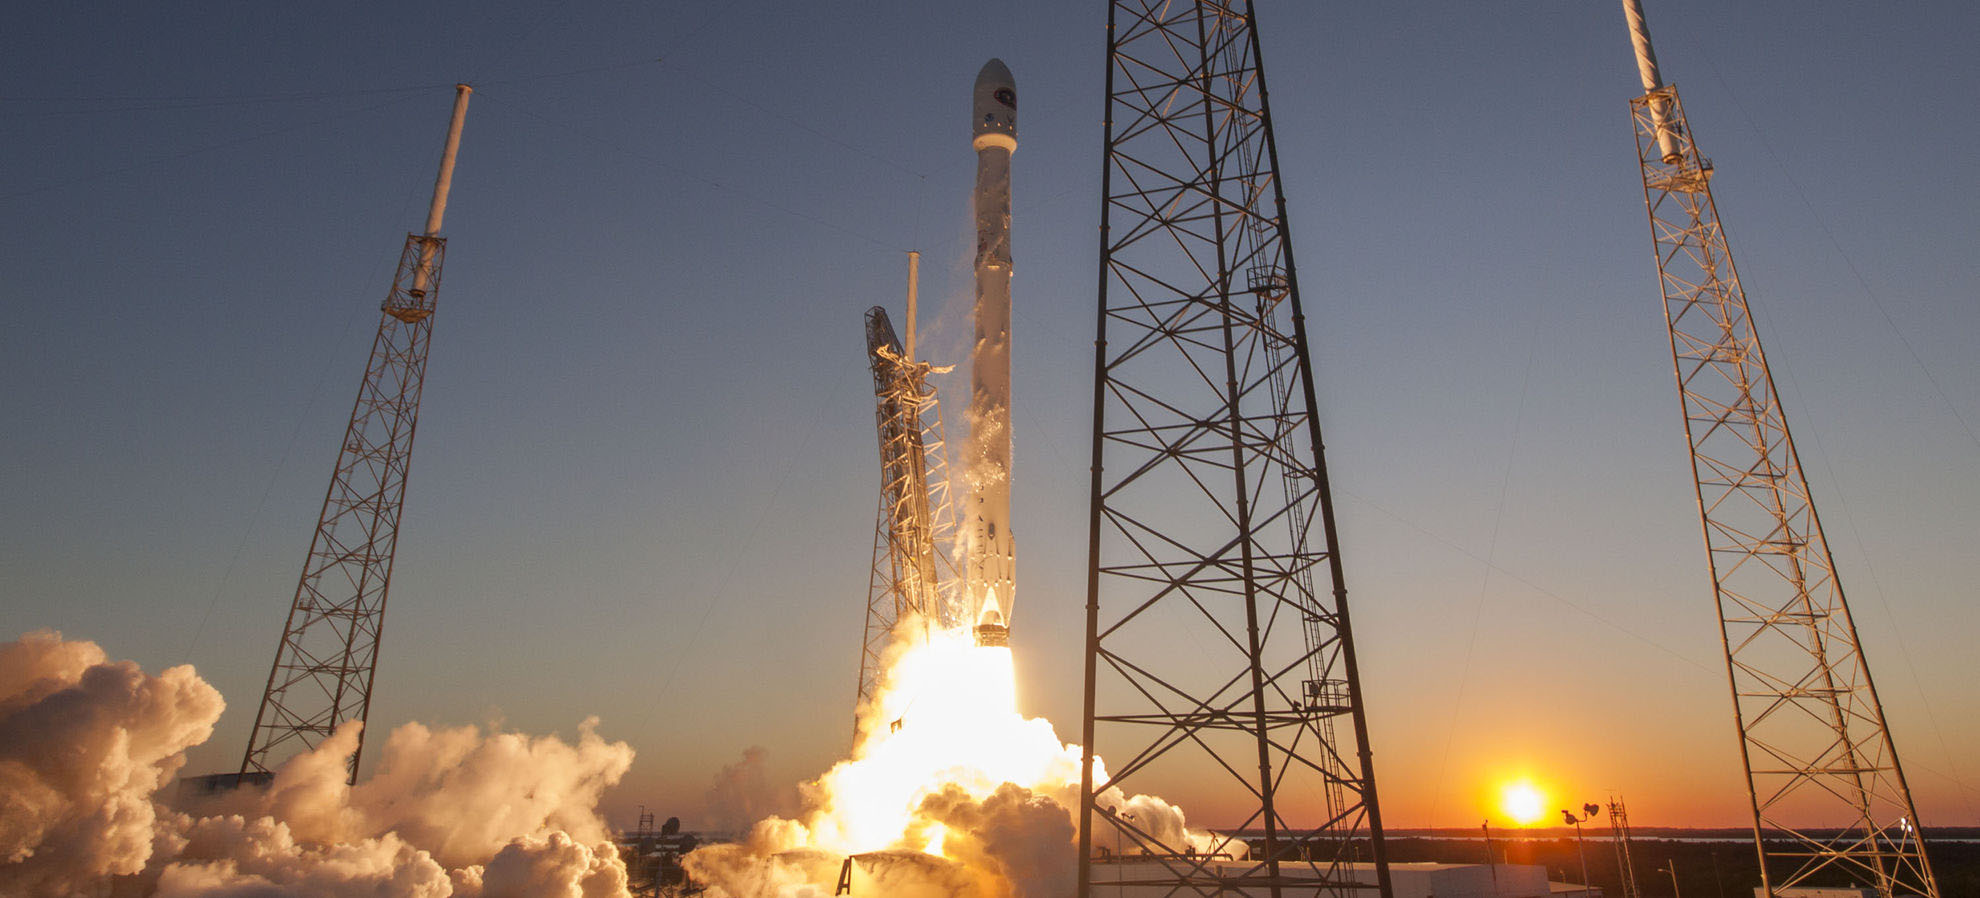 SpaceX launched its ninth unmanned cargo resupply mission to the ISS on April 8, 2016 from Cape Canaveral, Florida. (Alan Walters / awaltersphoto.com)